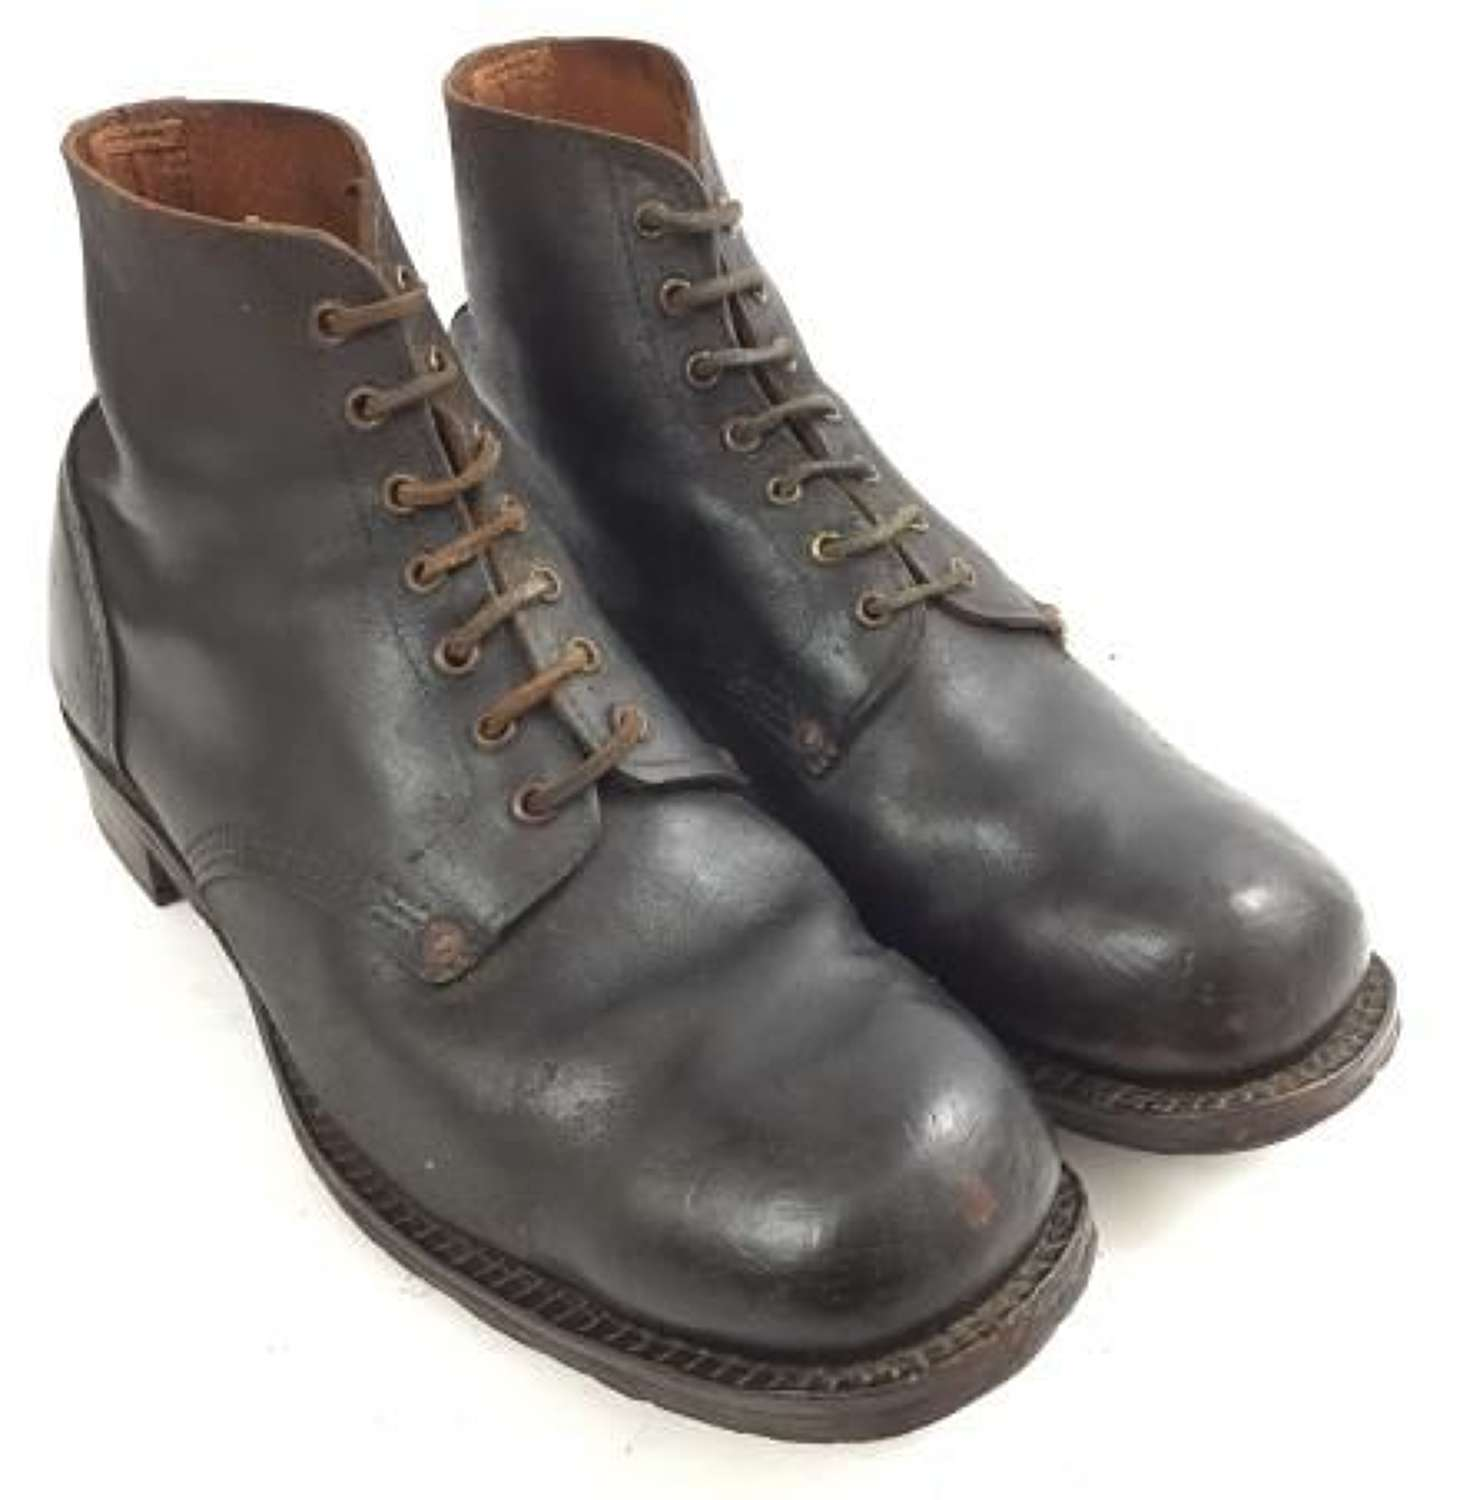 Original 1915 Dated British Army B5 Ankle Boots